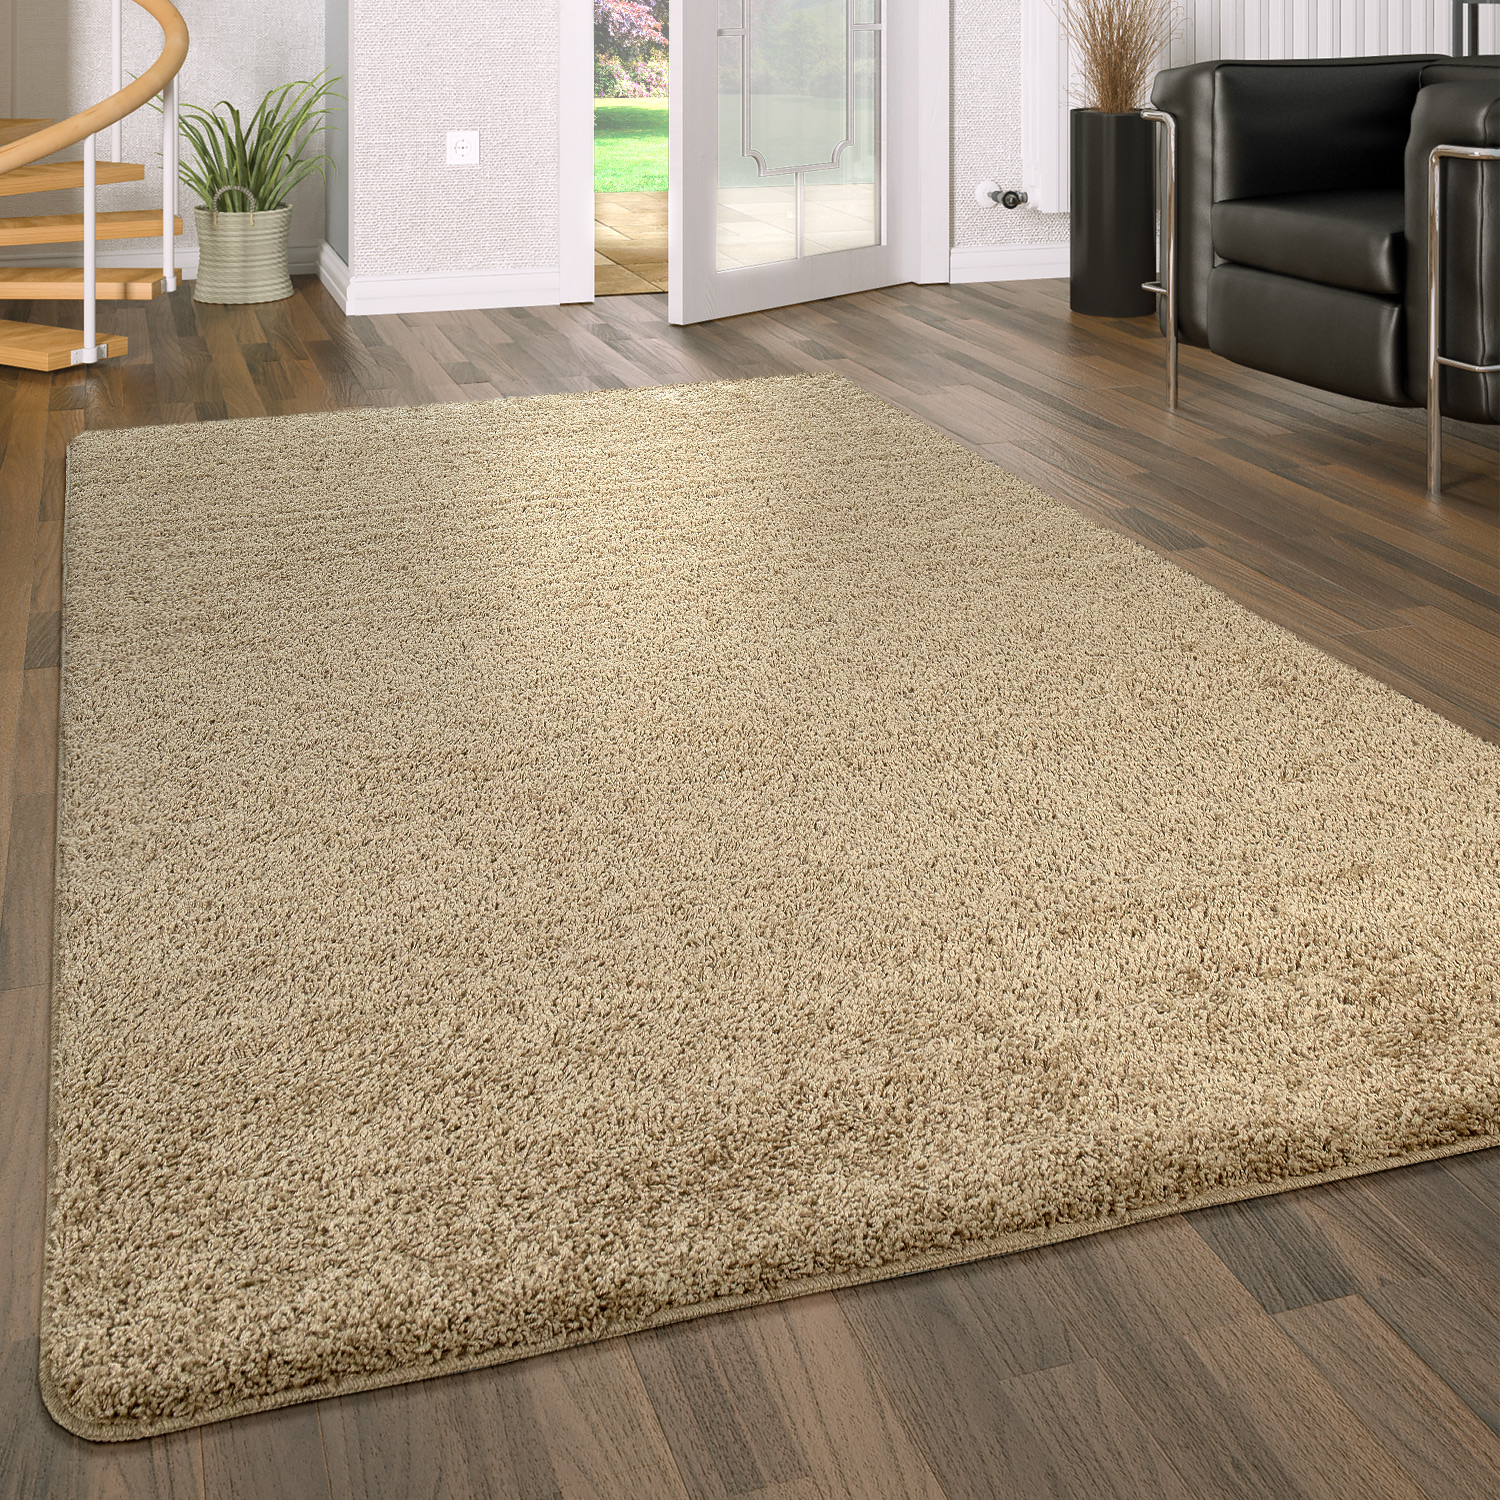 Deep Pile Living Room Rug Washable Shaggy Non-Slip One Colour In Beige